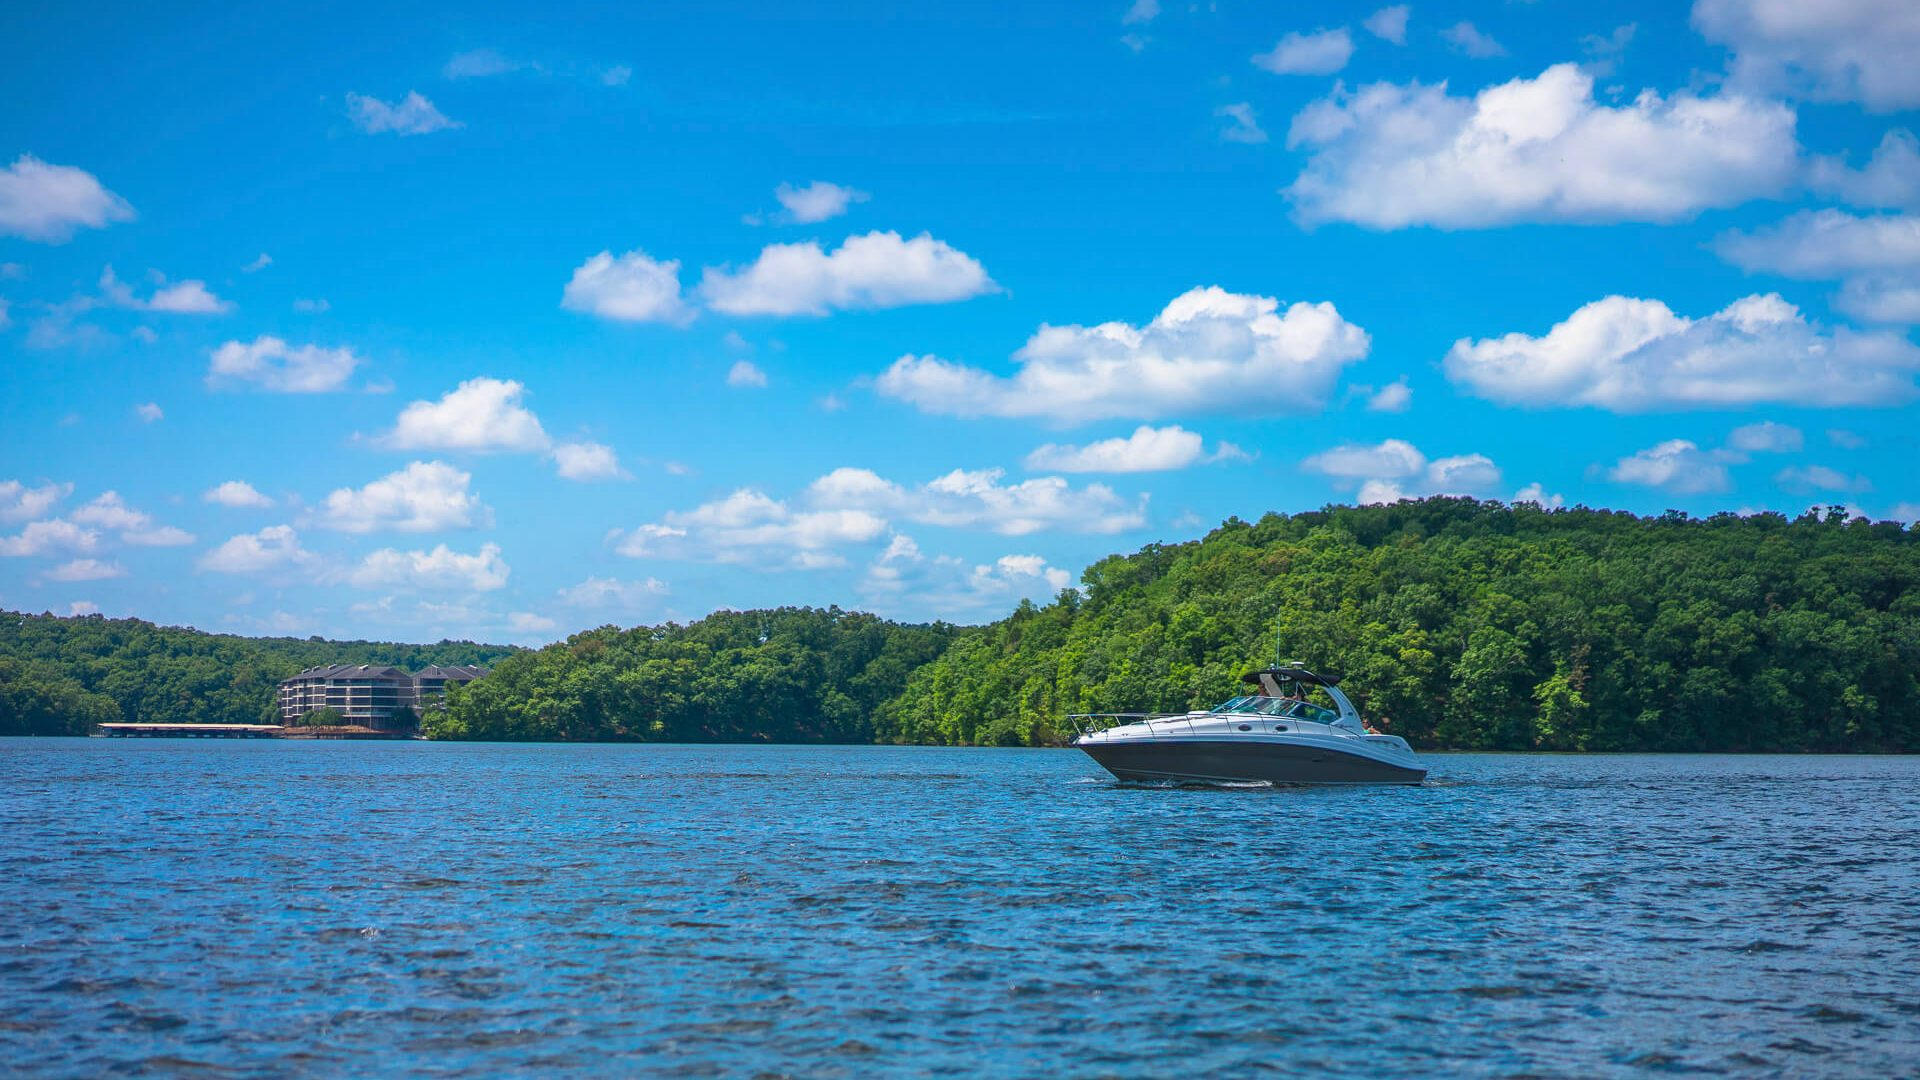 Lake of the Ozarks is a budget-friendly destination